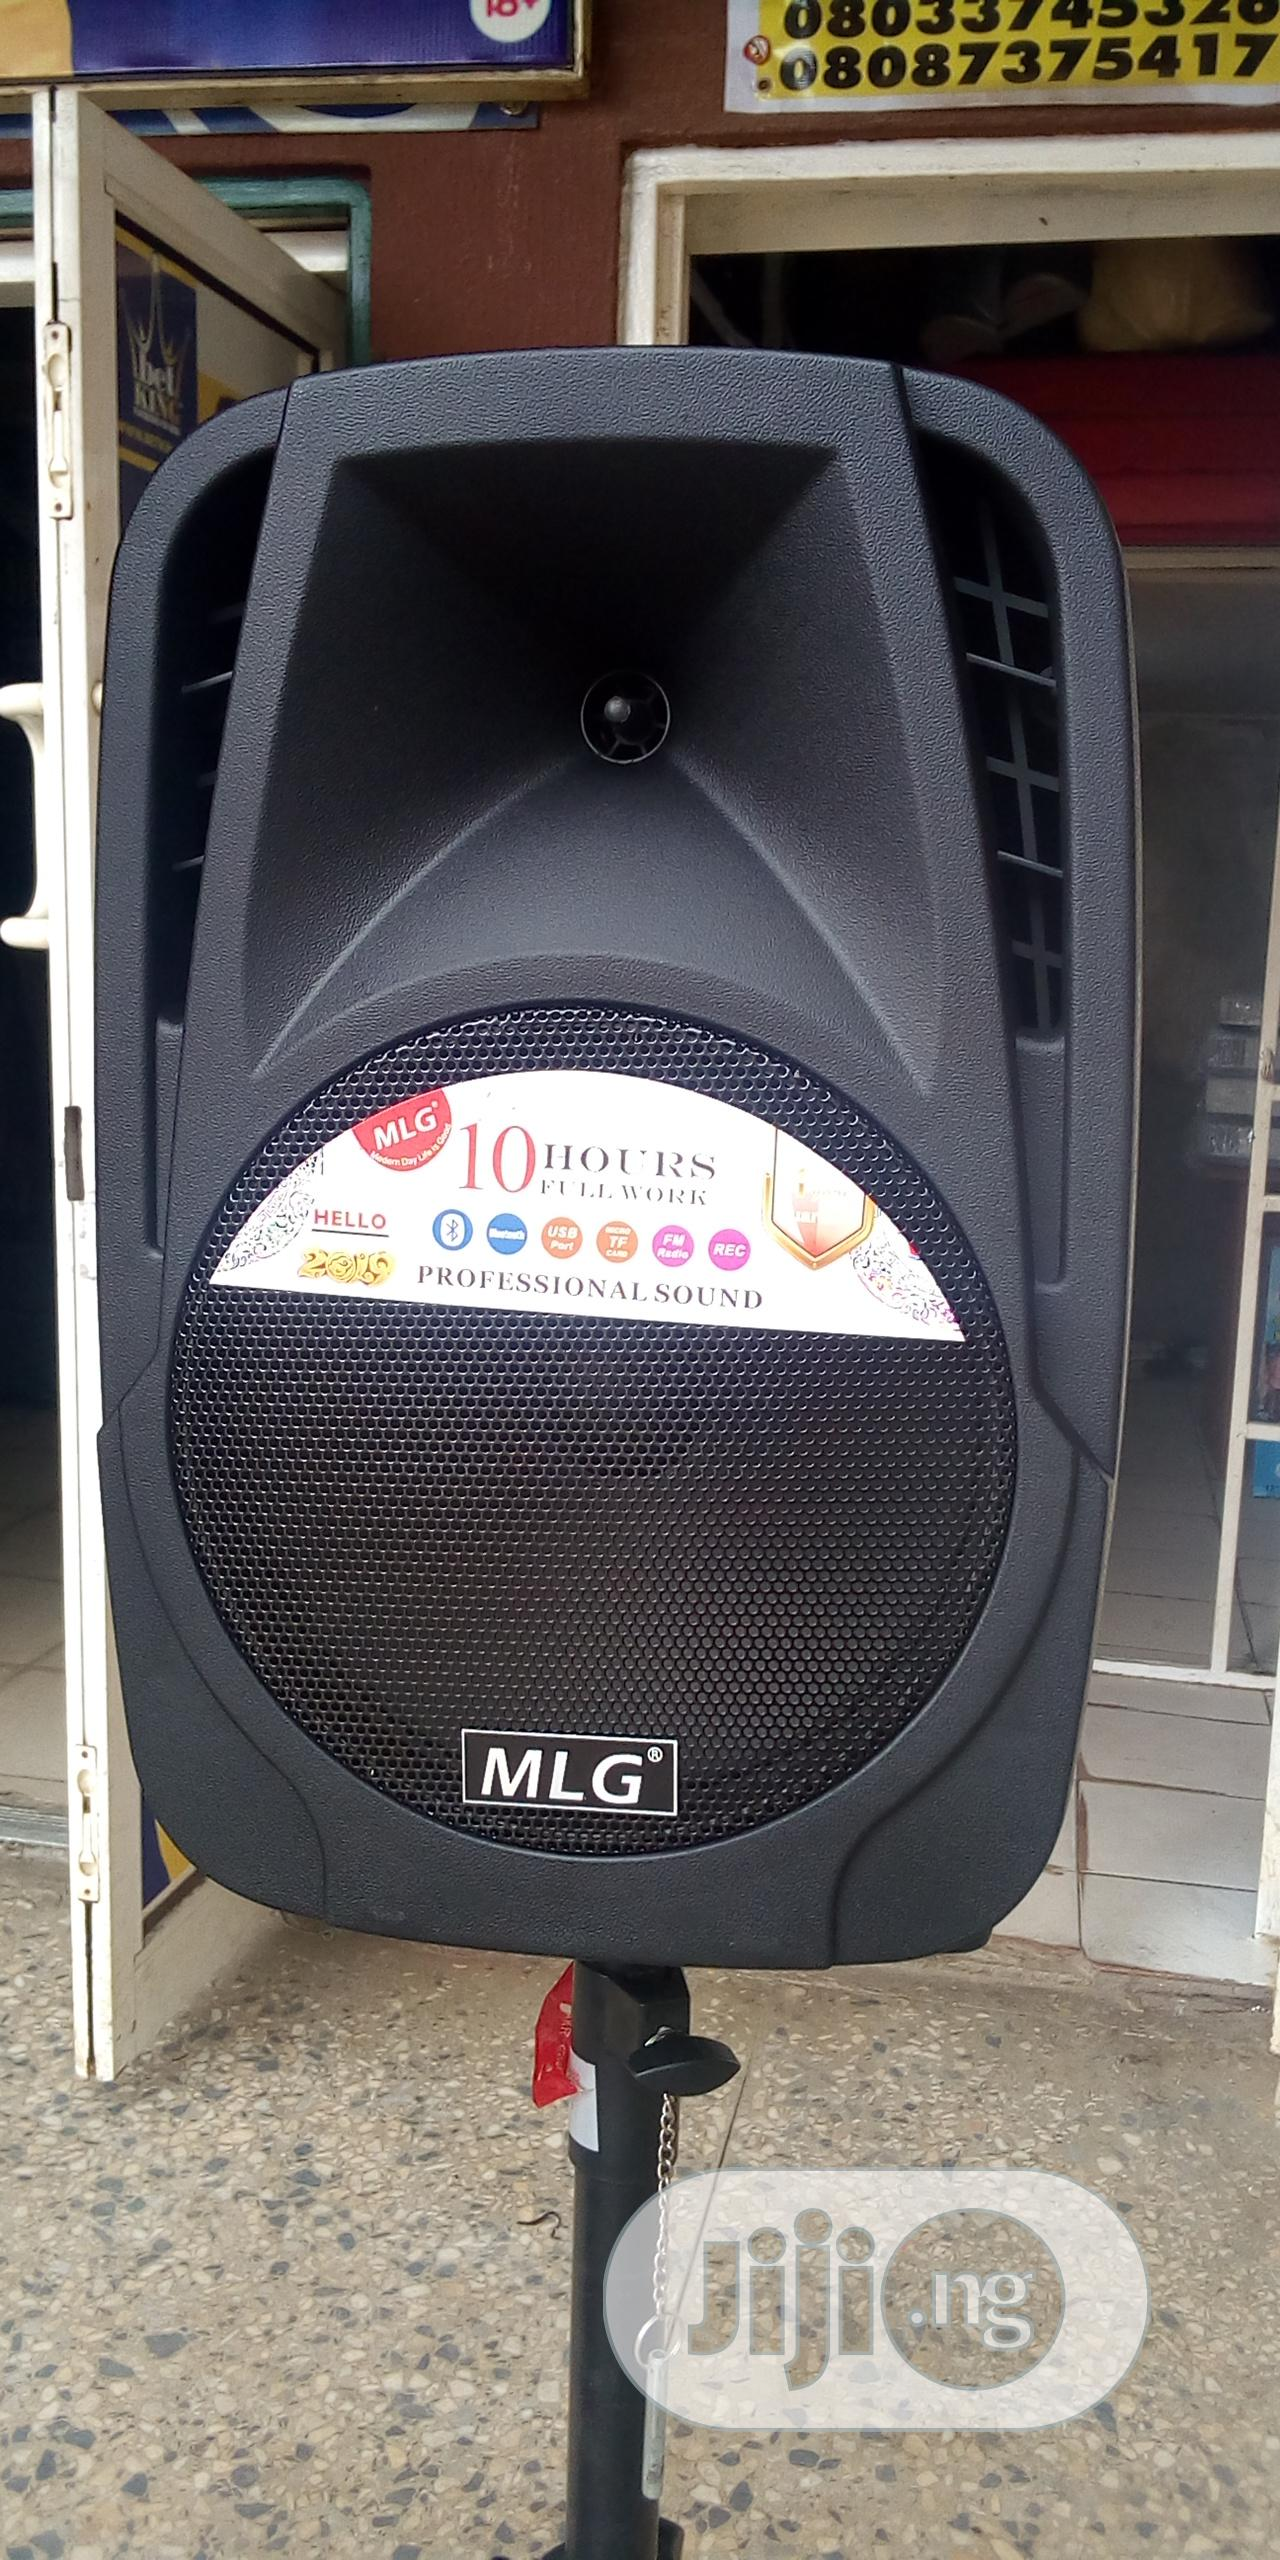 Super Duper Sounds Kingy Rechargeable Bluetooth Speaker   Audio & Music Equipment for sale in Dakibiyu, Abuja (FCT) State, Nigeria